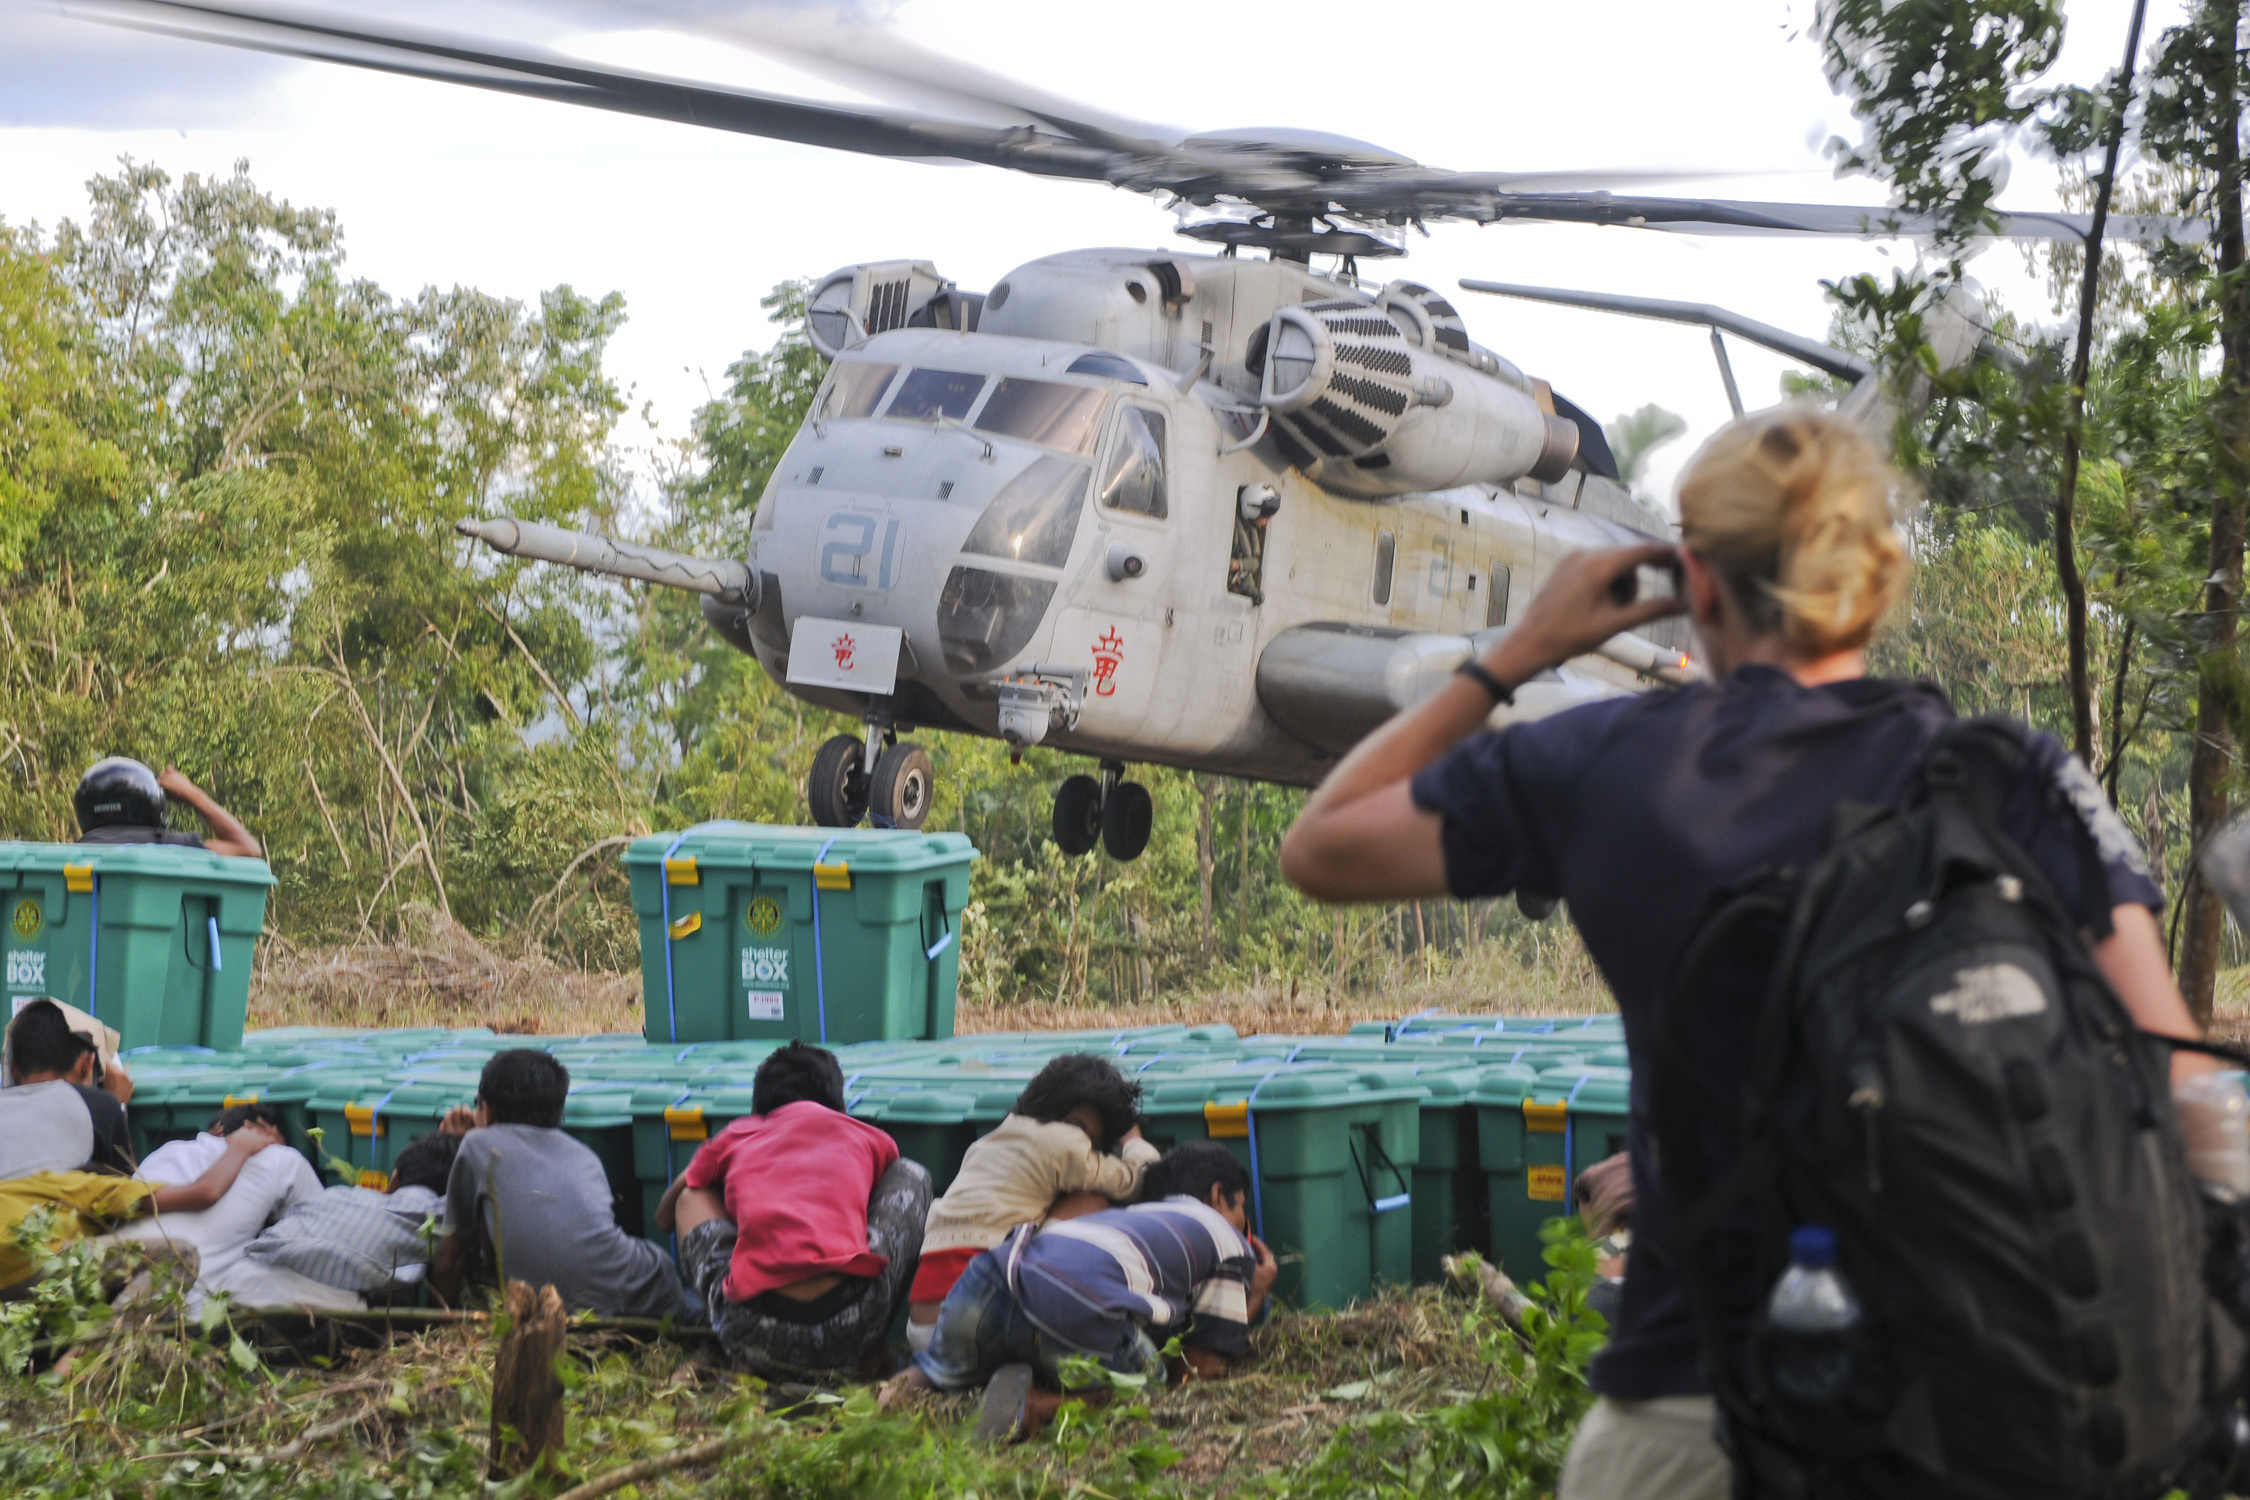 A relief agency worker photographs children from Hula Banda village as they use ShelterBoxes for cover from the prop blast of a CH-53E Sea Stallion helicopter assigned to Marine Medium Helicopter Squadron 265. Each ShelterBox contains materials to sustain a family of 10 for several weeks. Amphibious Force U.S. 7th Fleet is coordinating U.S. military assistance to victims of the recent earthquakes in West Sumatra, at the request of the Indonesian government.